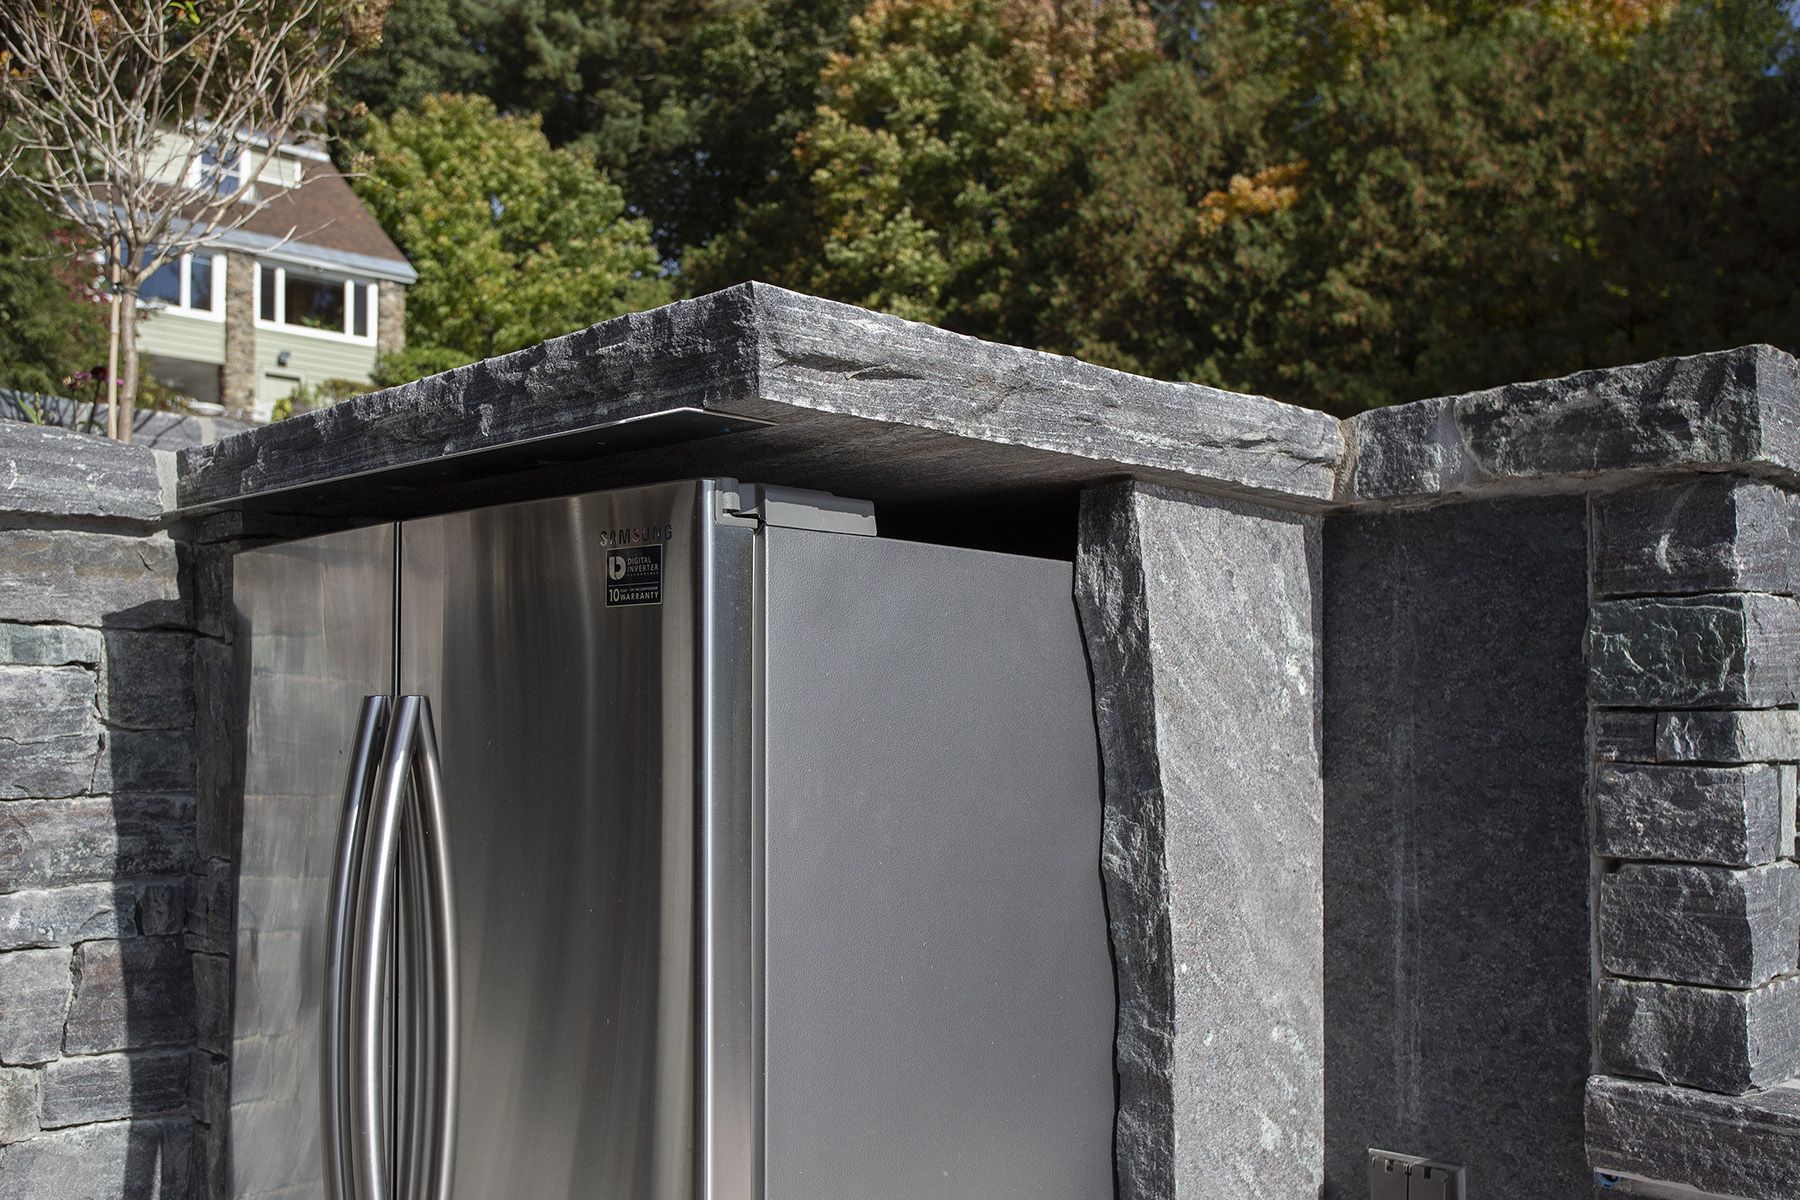 stainless steel fridge surrounded by stone